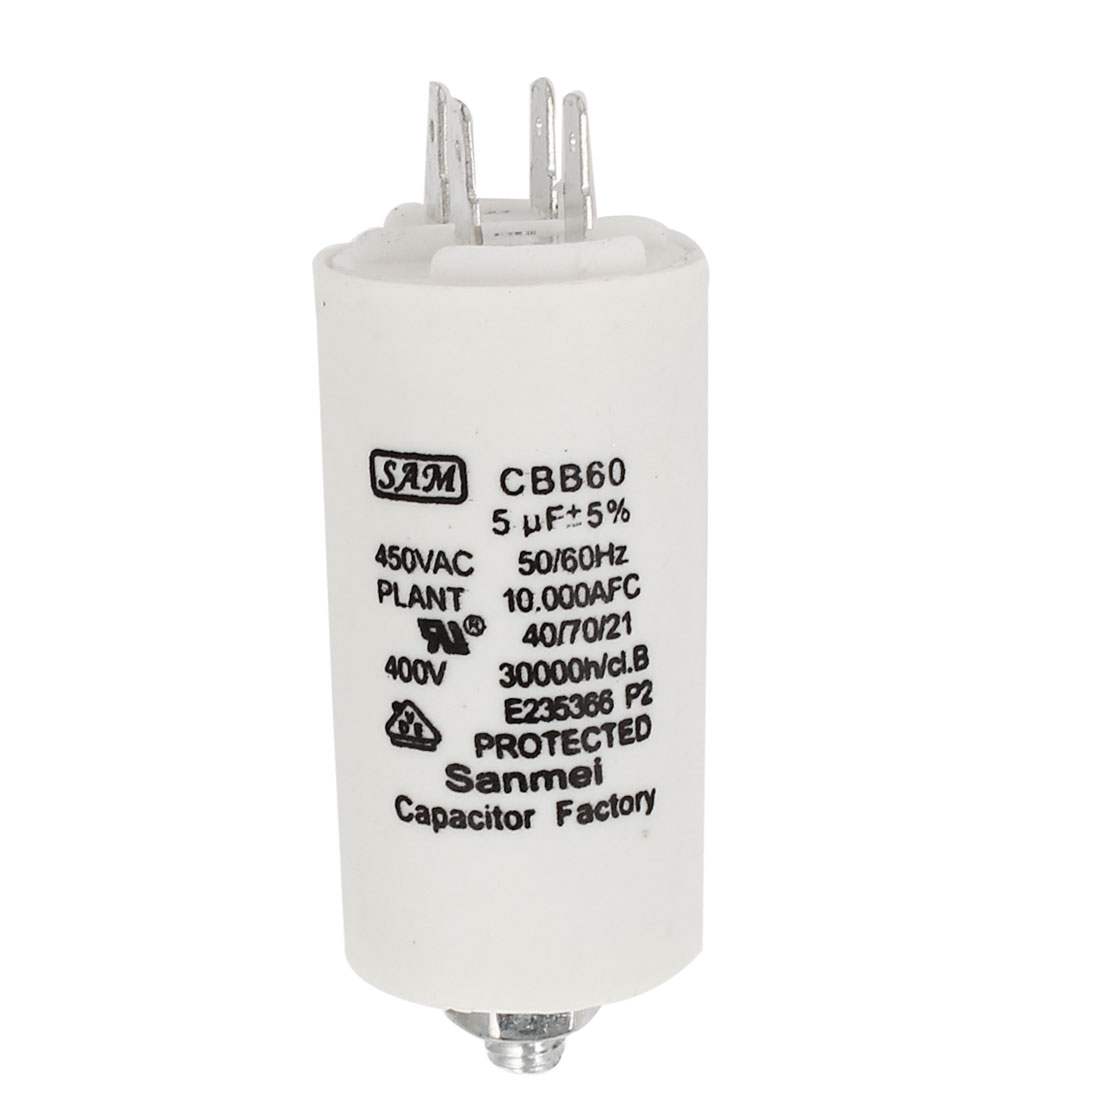 AC 450V 5uF 8mm Thread Washing Machine Polypropylene Film Capacitor